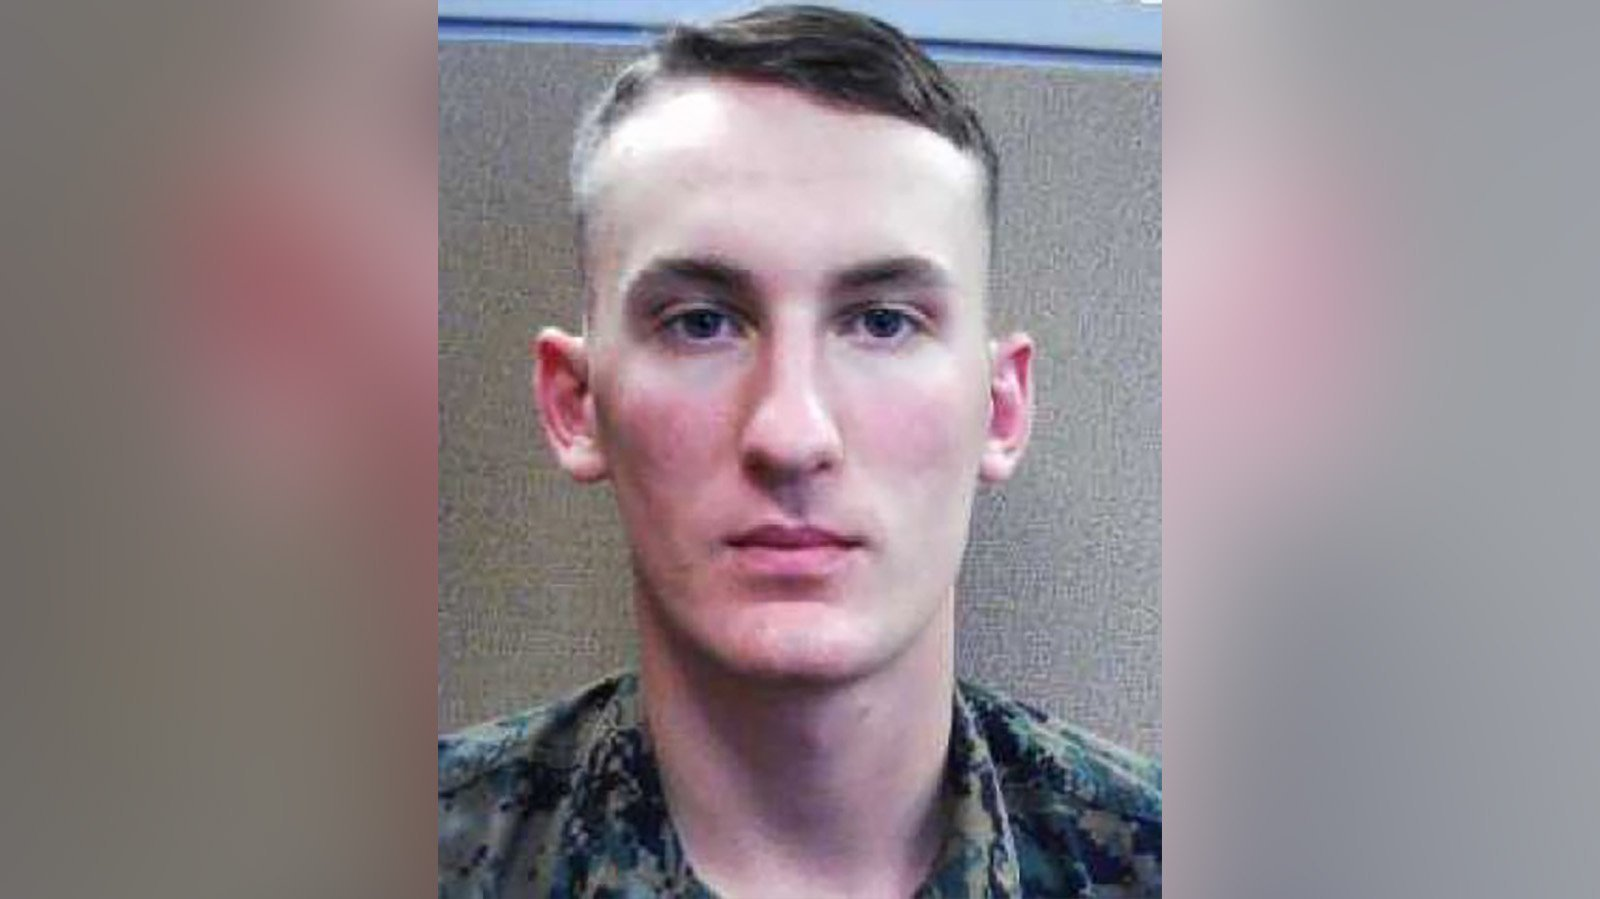 A Marine deserter is wanted in the murder of his mother's boyfriend in Virginia, police say